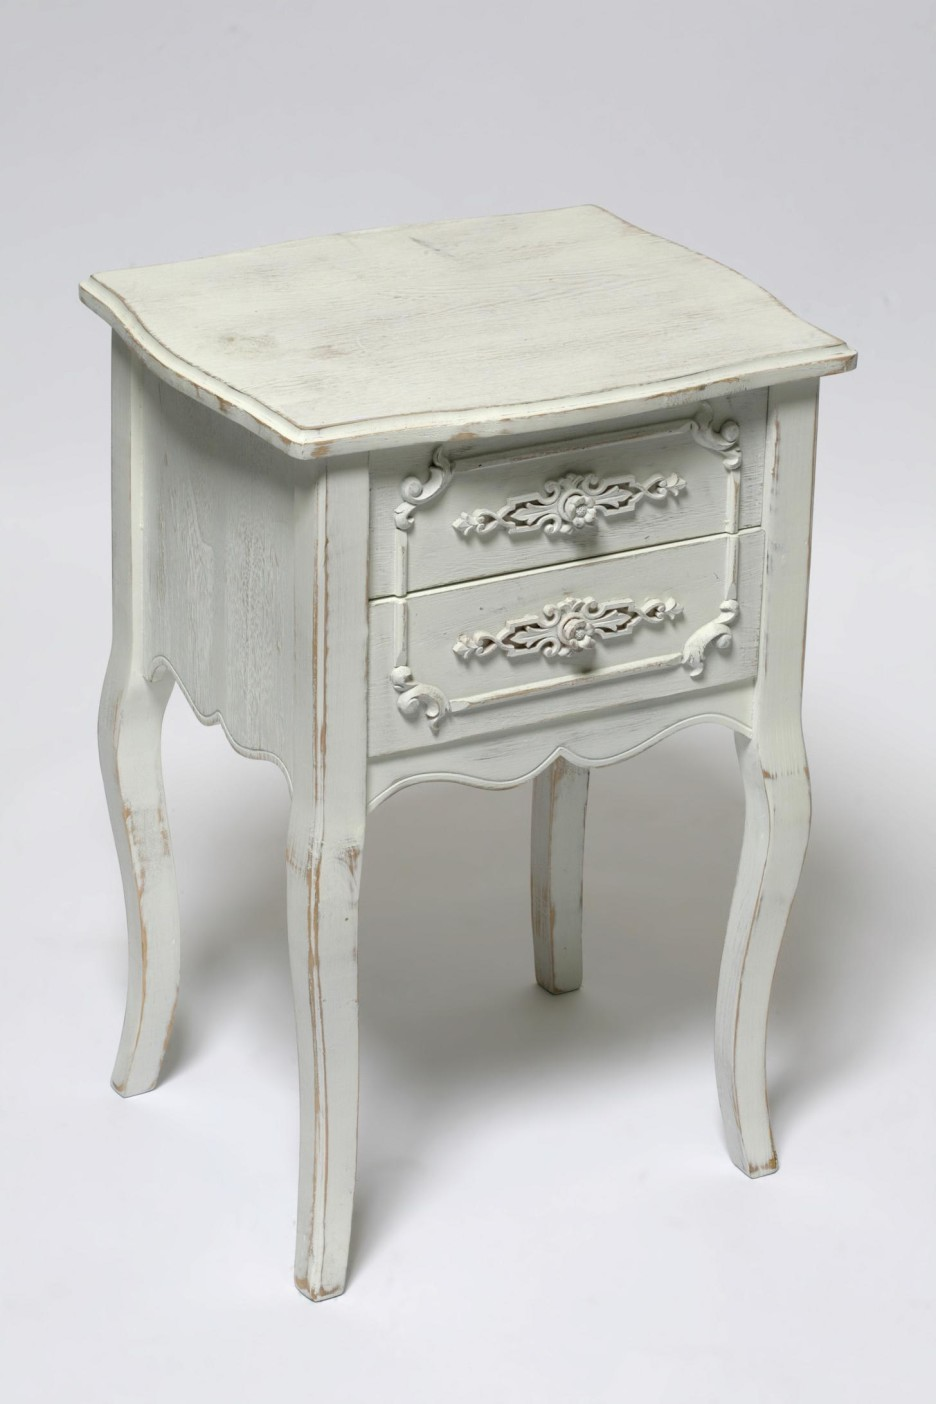 top superb round nightstand white bedside table tables distressed end design elephant coffee glass structube wooden cabinets cedar target martha stewart outdoor furniture nesting